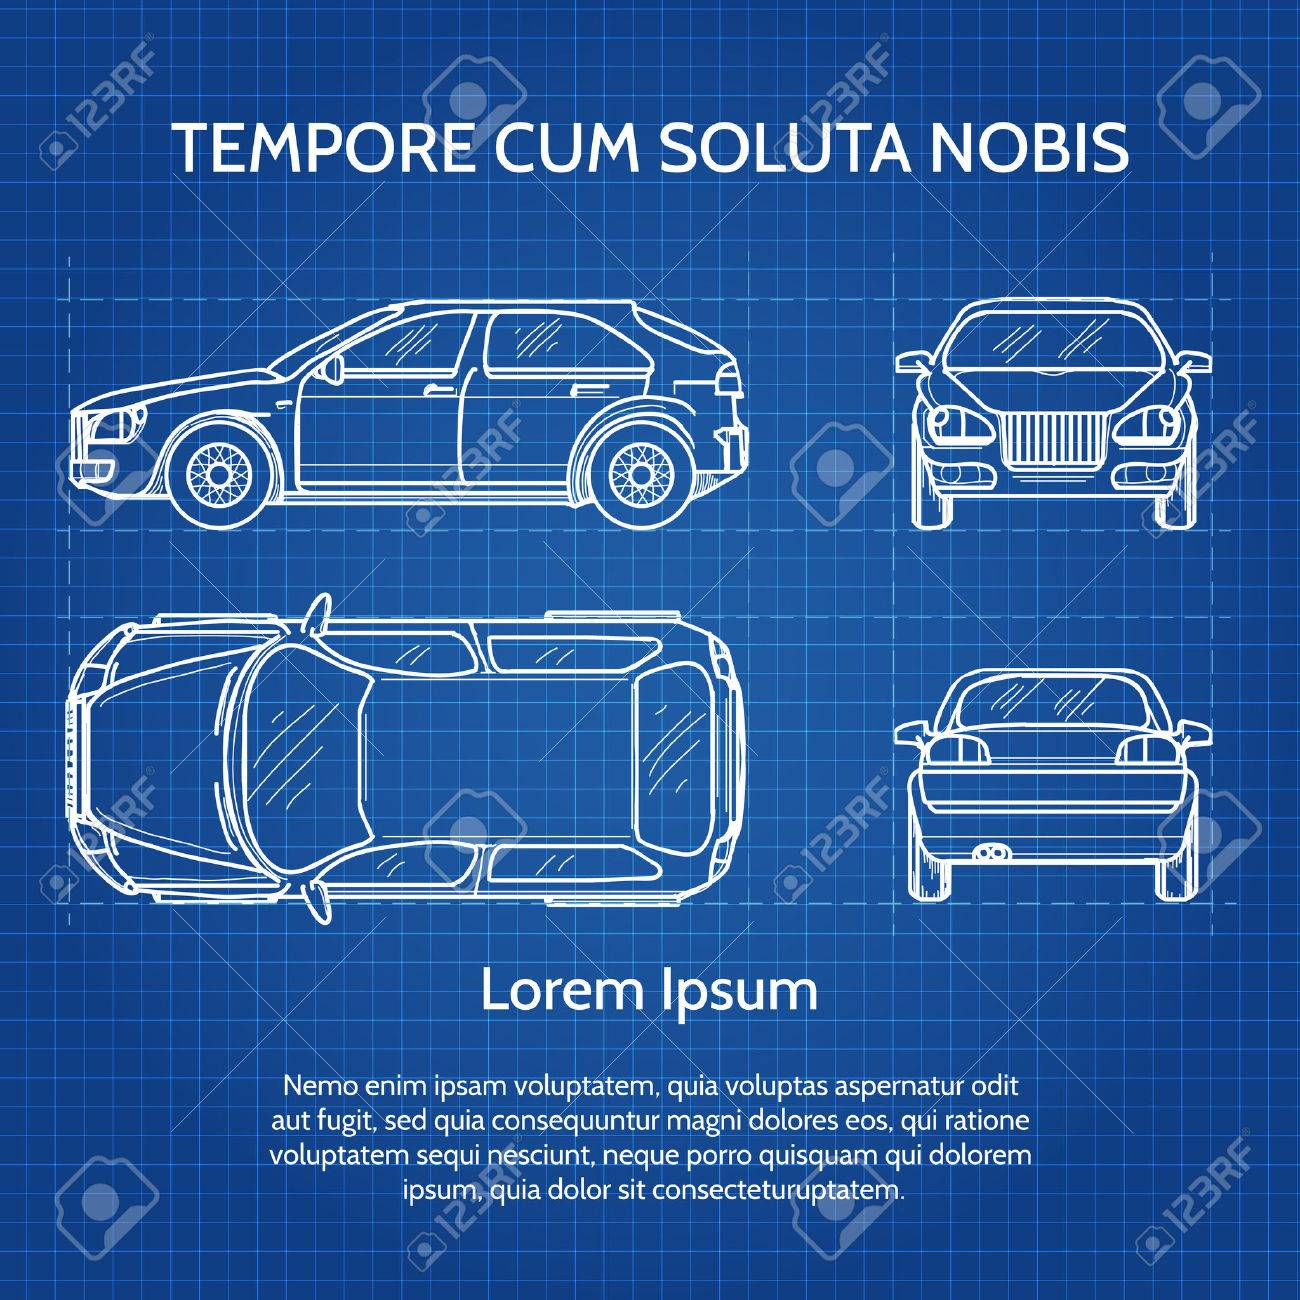 Vehicle drawing or vehicle blueprint image car blueprint vector vehicle drawing or vehicle blueprint image car blueprint illustration malvernweather Choice Image